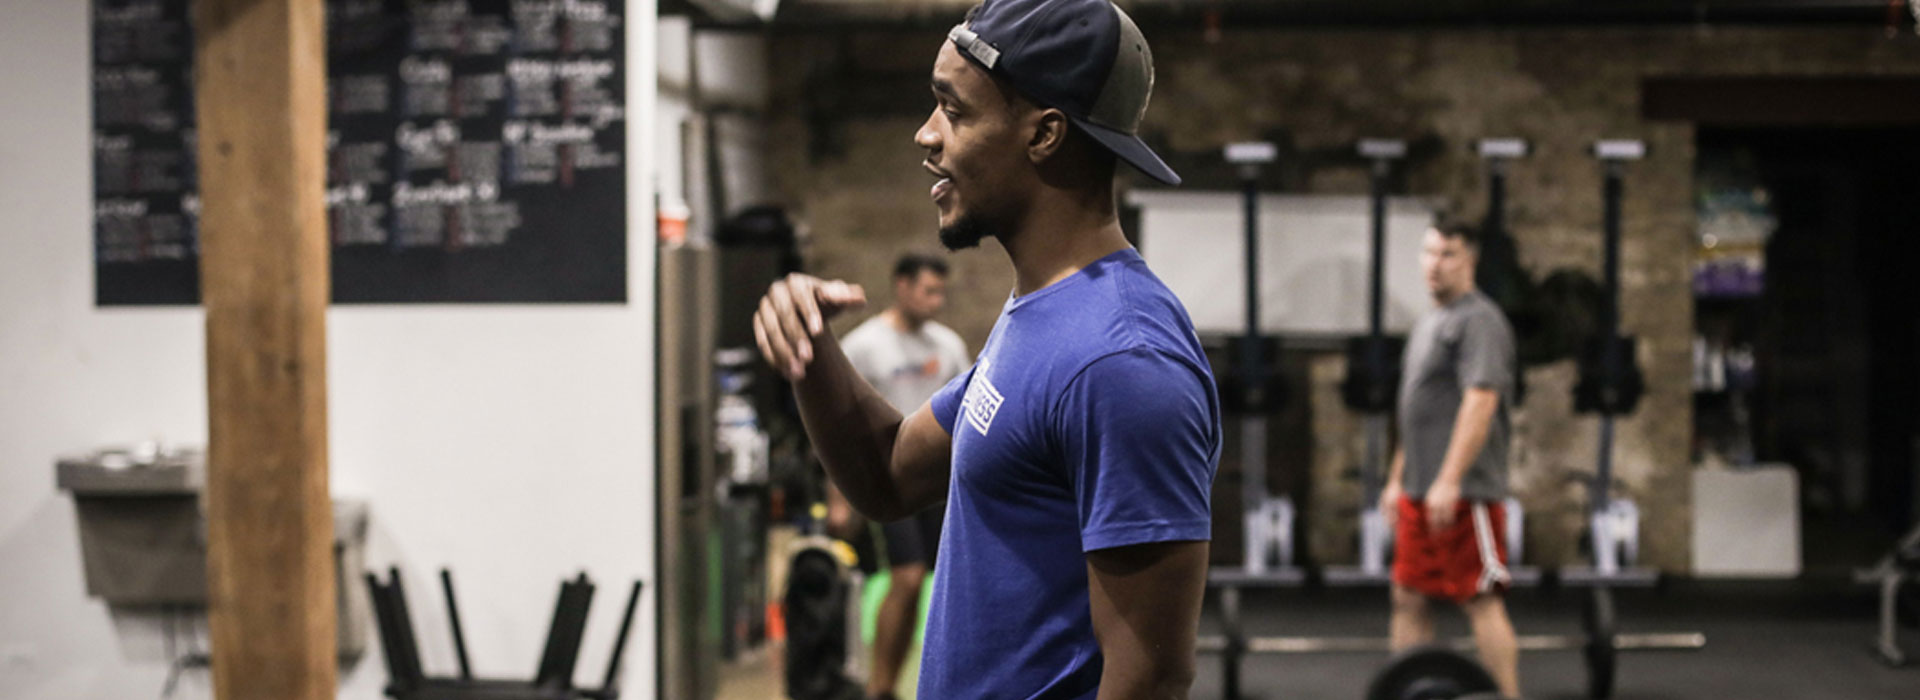 Personal Fitness Training in West Town Chicago IL, Personal Fitness Training near Ukrainian Village Chicago IL, Personal Fitness Training near Wicker Park Chicago IL, Personal Fitness Training near West Loop Chicago IL, Personal Fitness Training near Humboldt Park Chicago IL